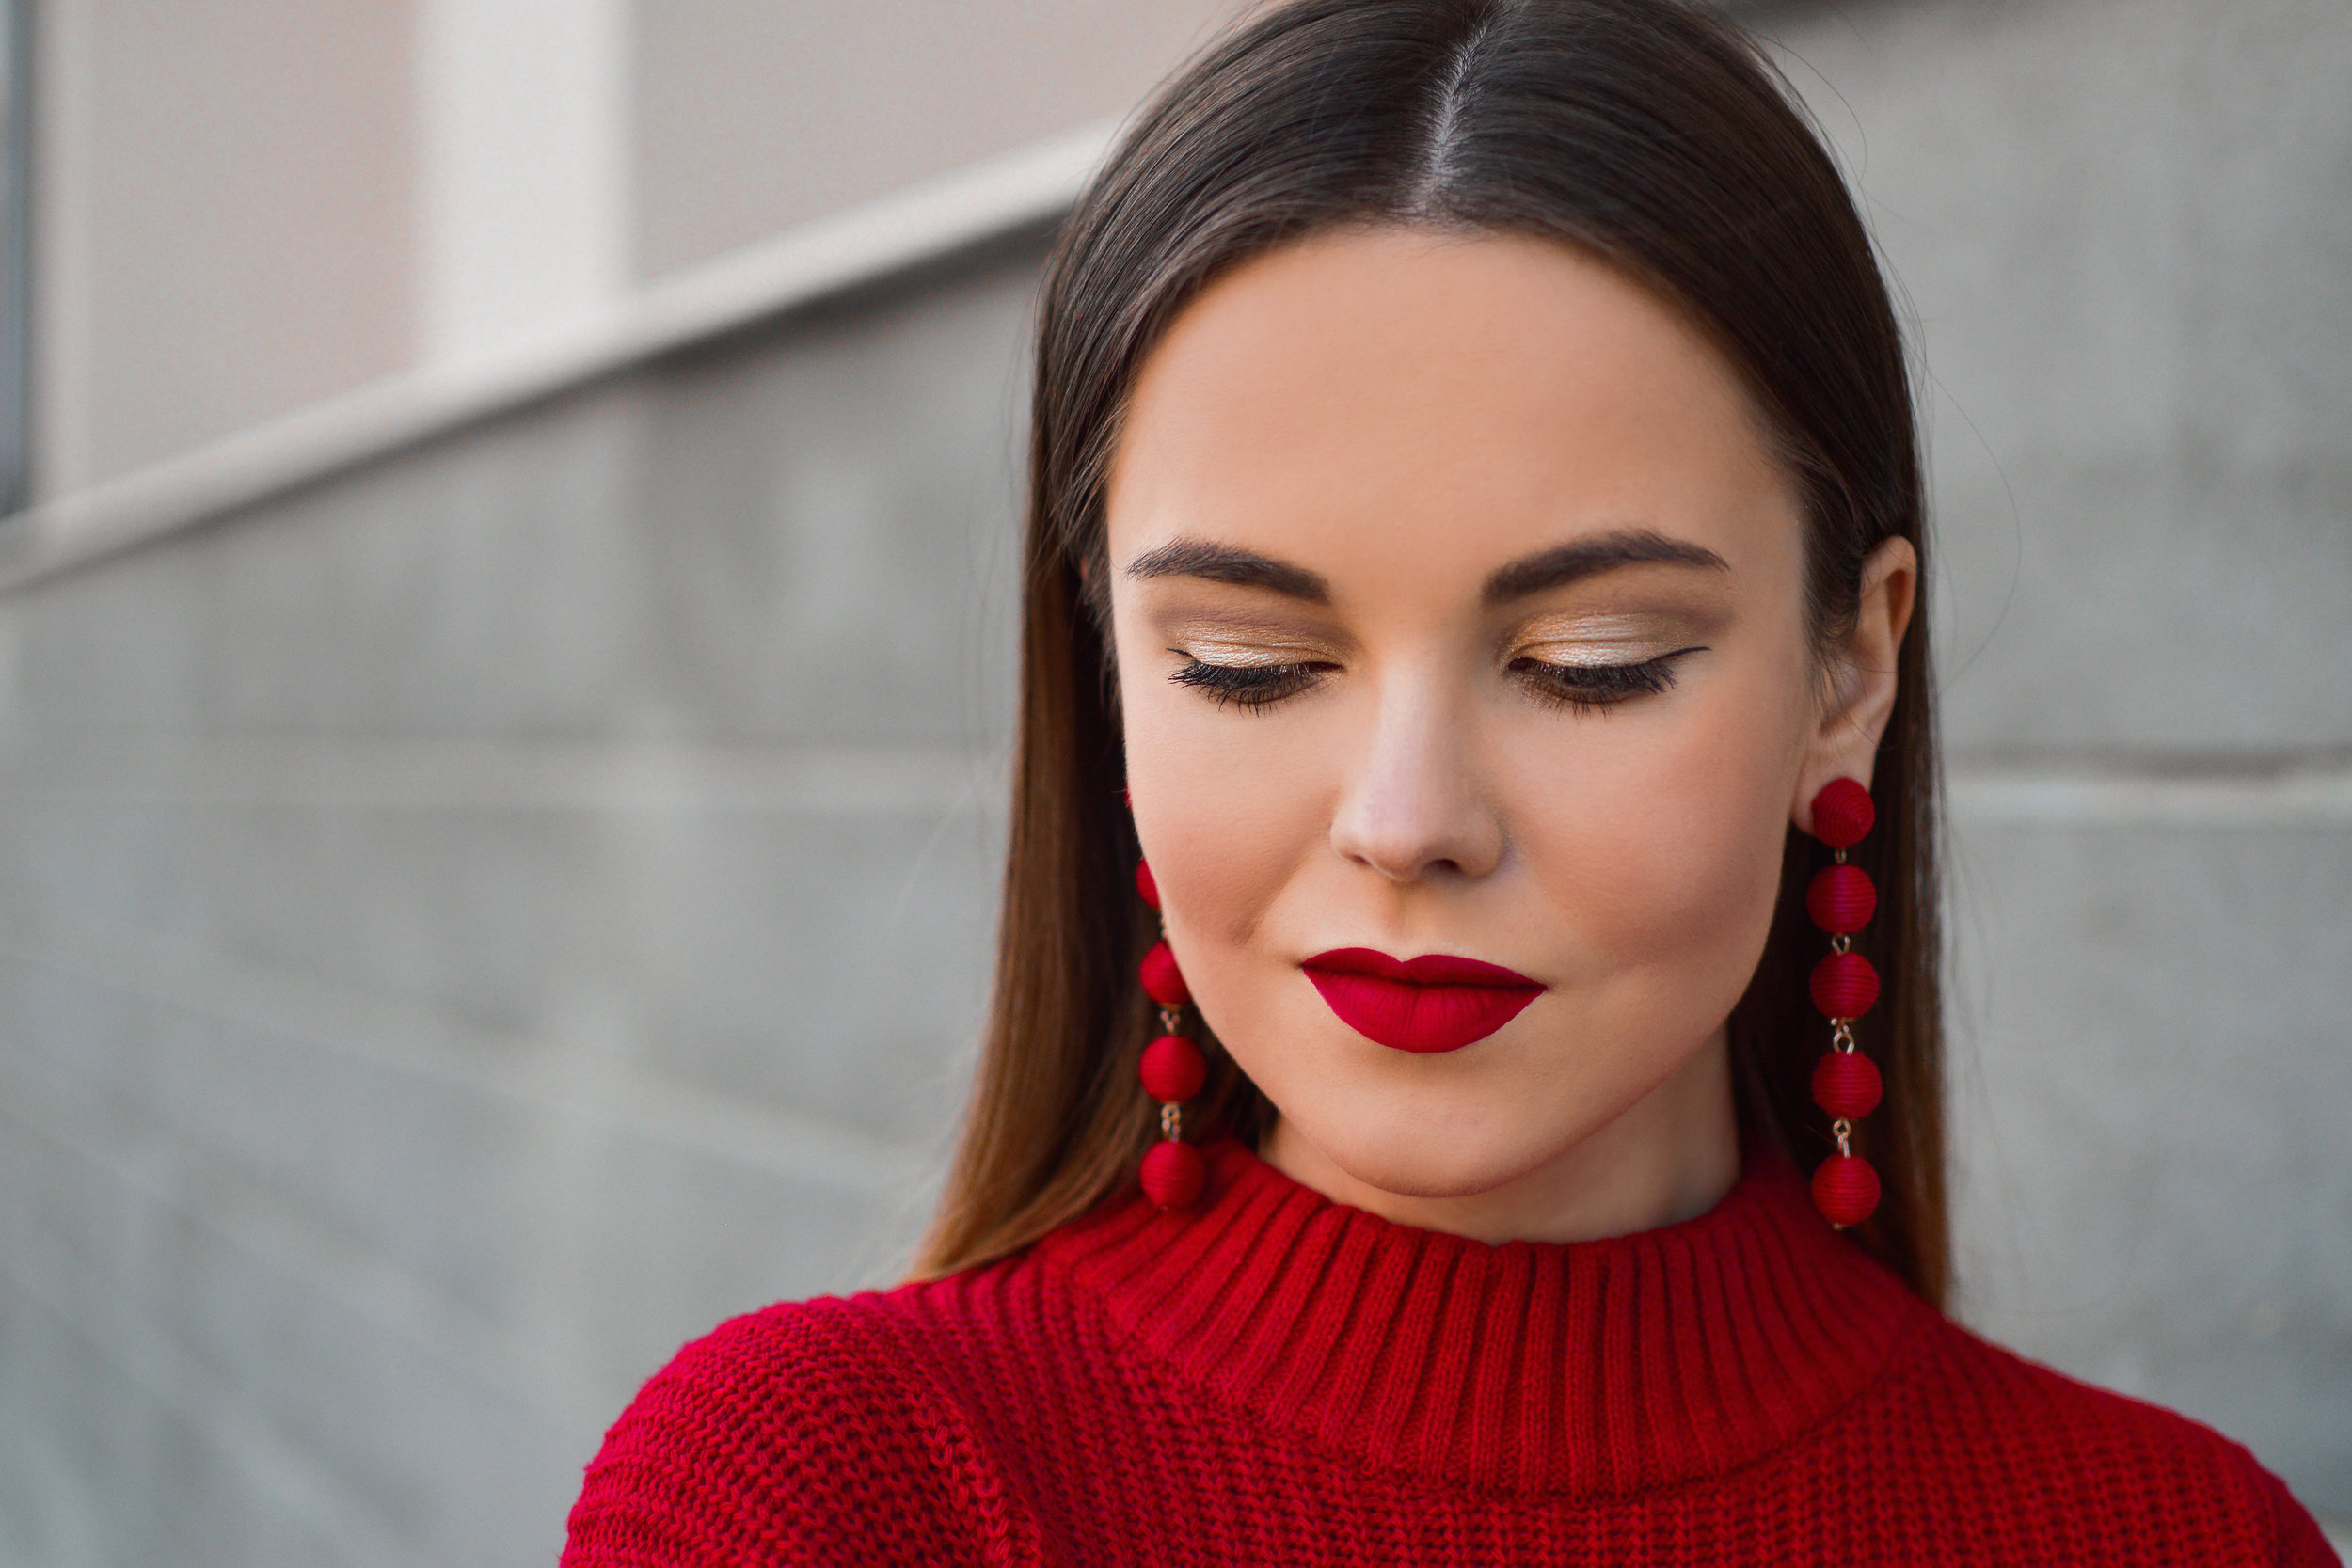 tips on Finding the Right Lip Colour -